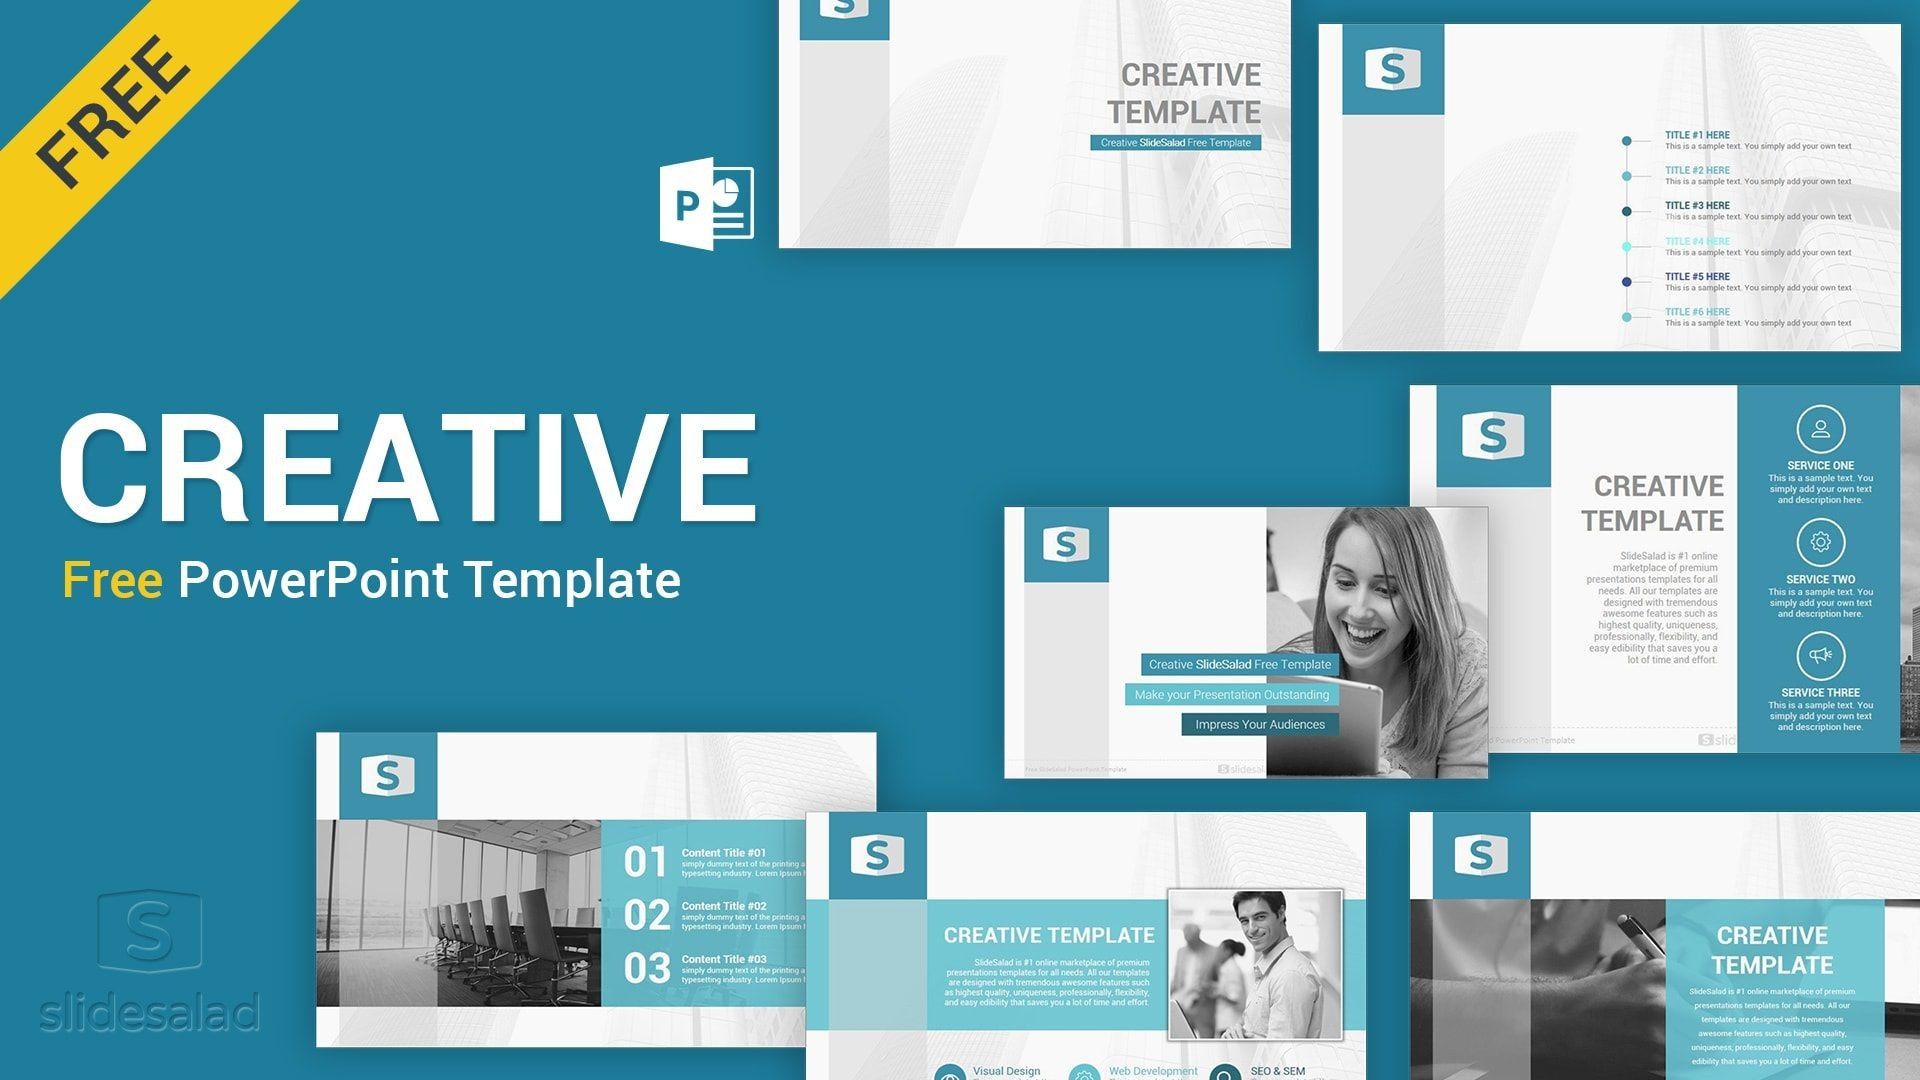 002 Awesome Download Free Powerpoint Template High Resolution  2019 Science Creative 20201920